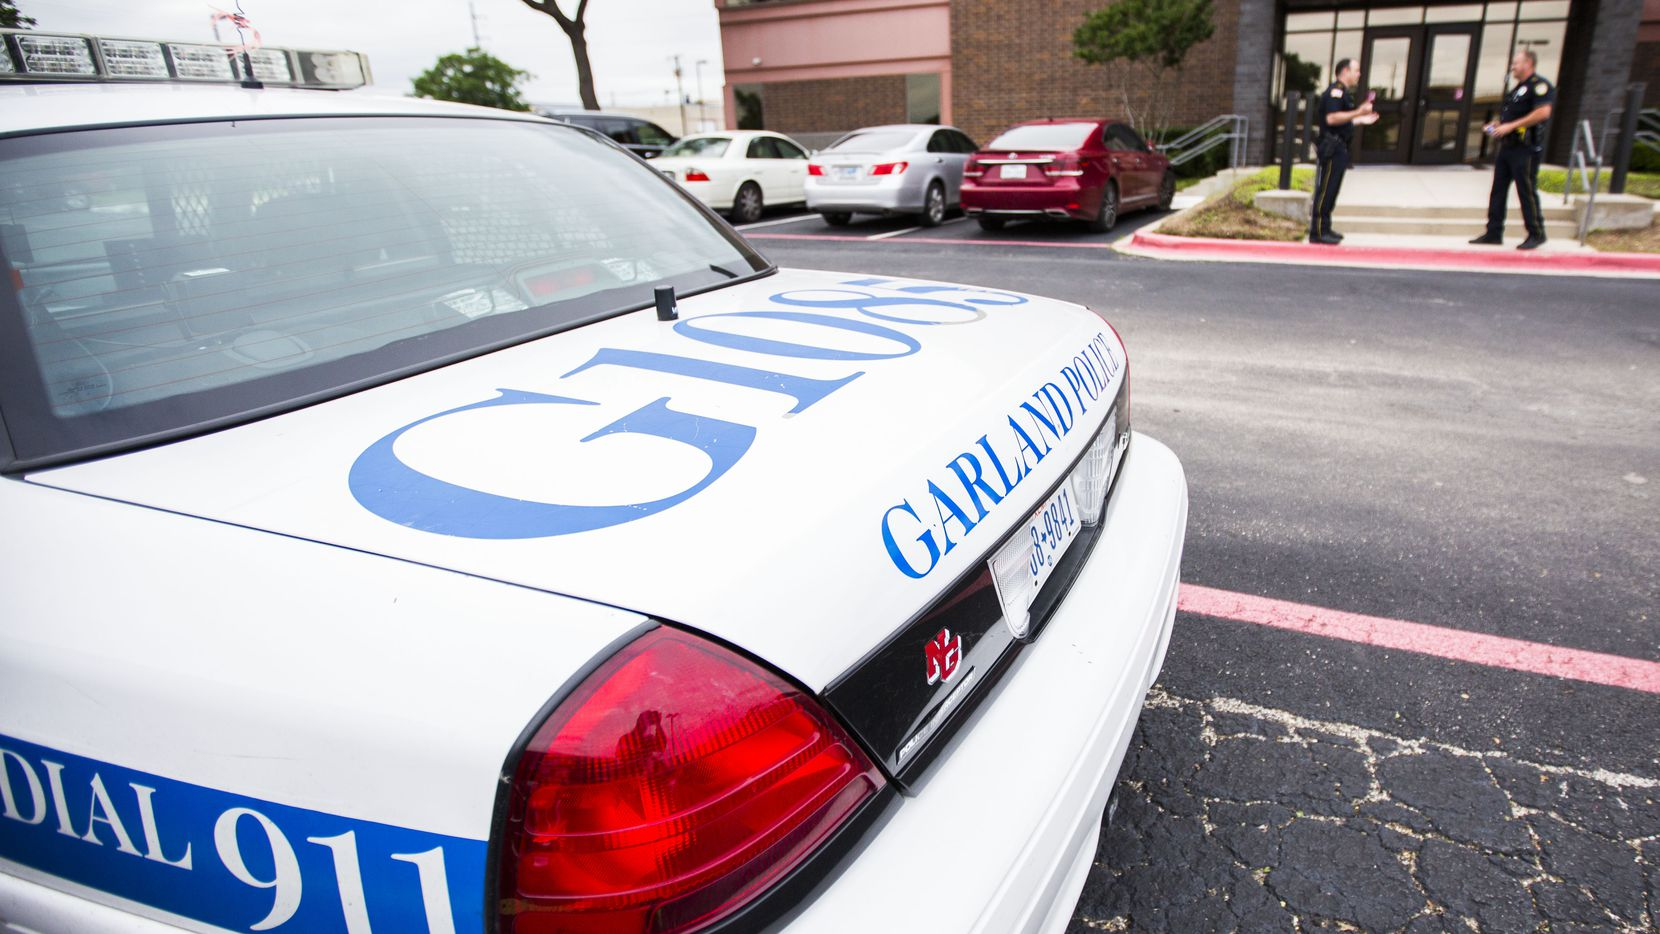 EEUU: Roban casa en Garland con engaño de que 'su agua tiene covid-19' (The Dallas Morning News)